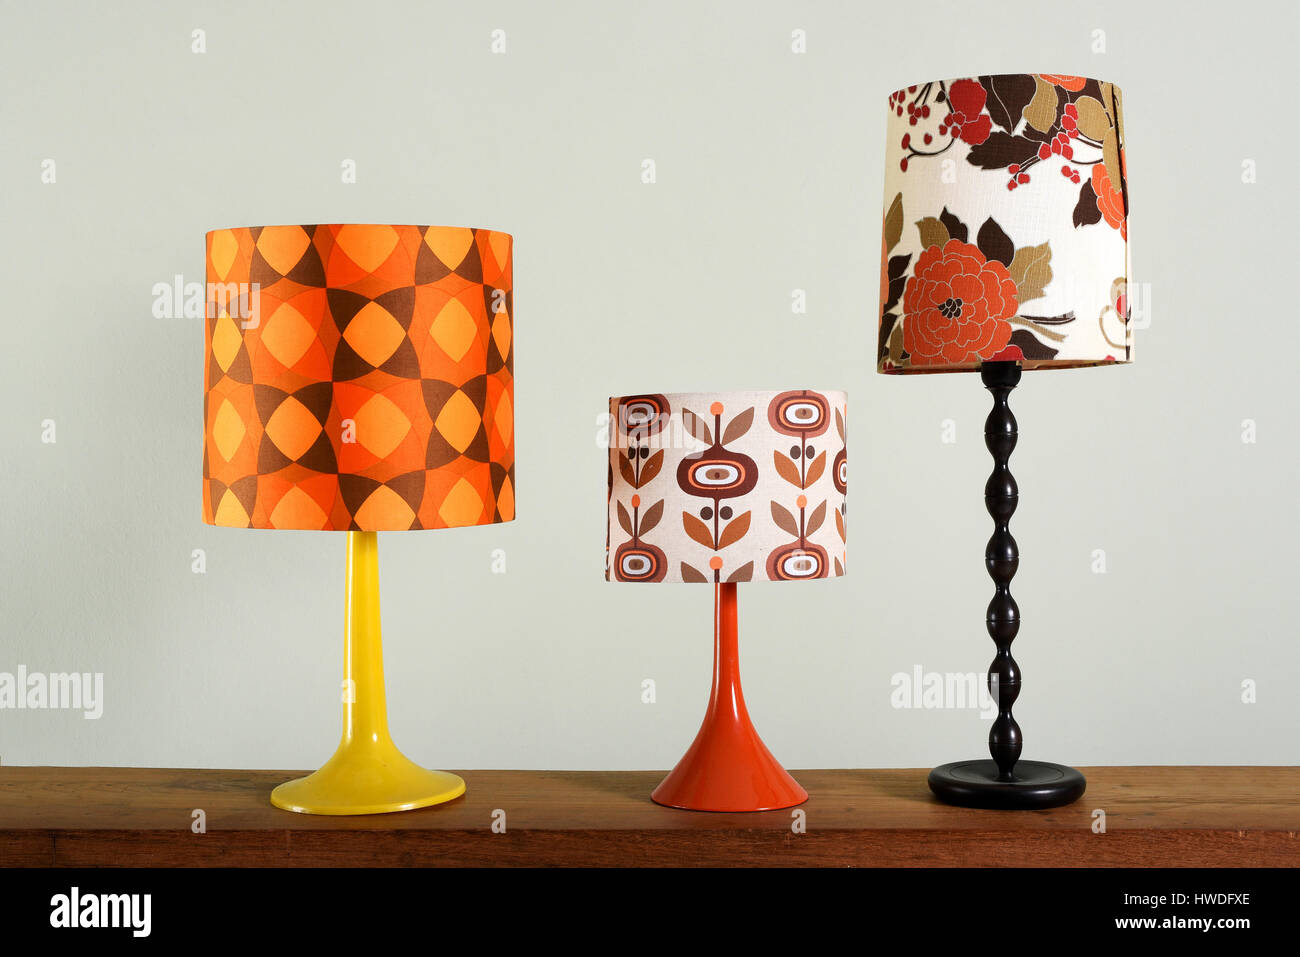 Still Life Collection Of Vintage Decorative Lamps Three